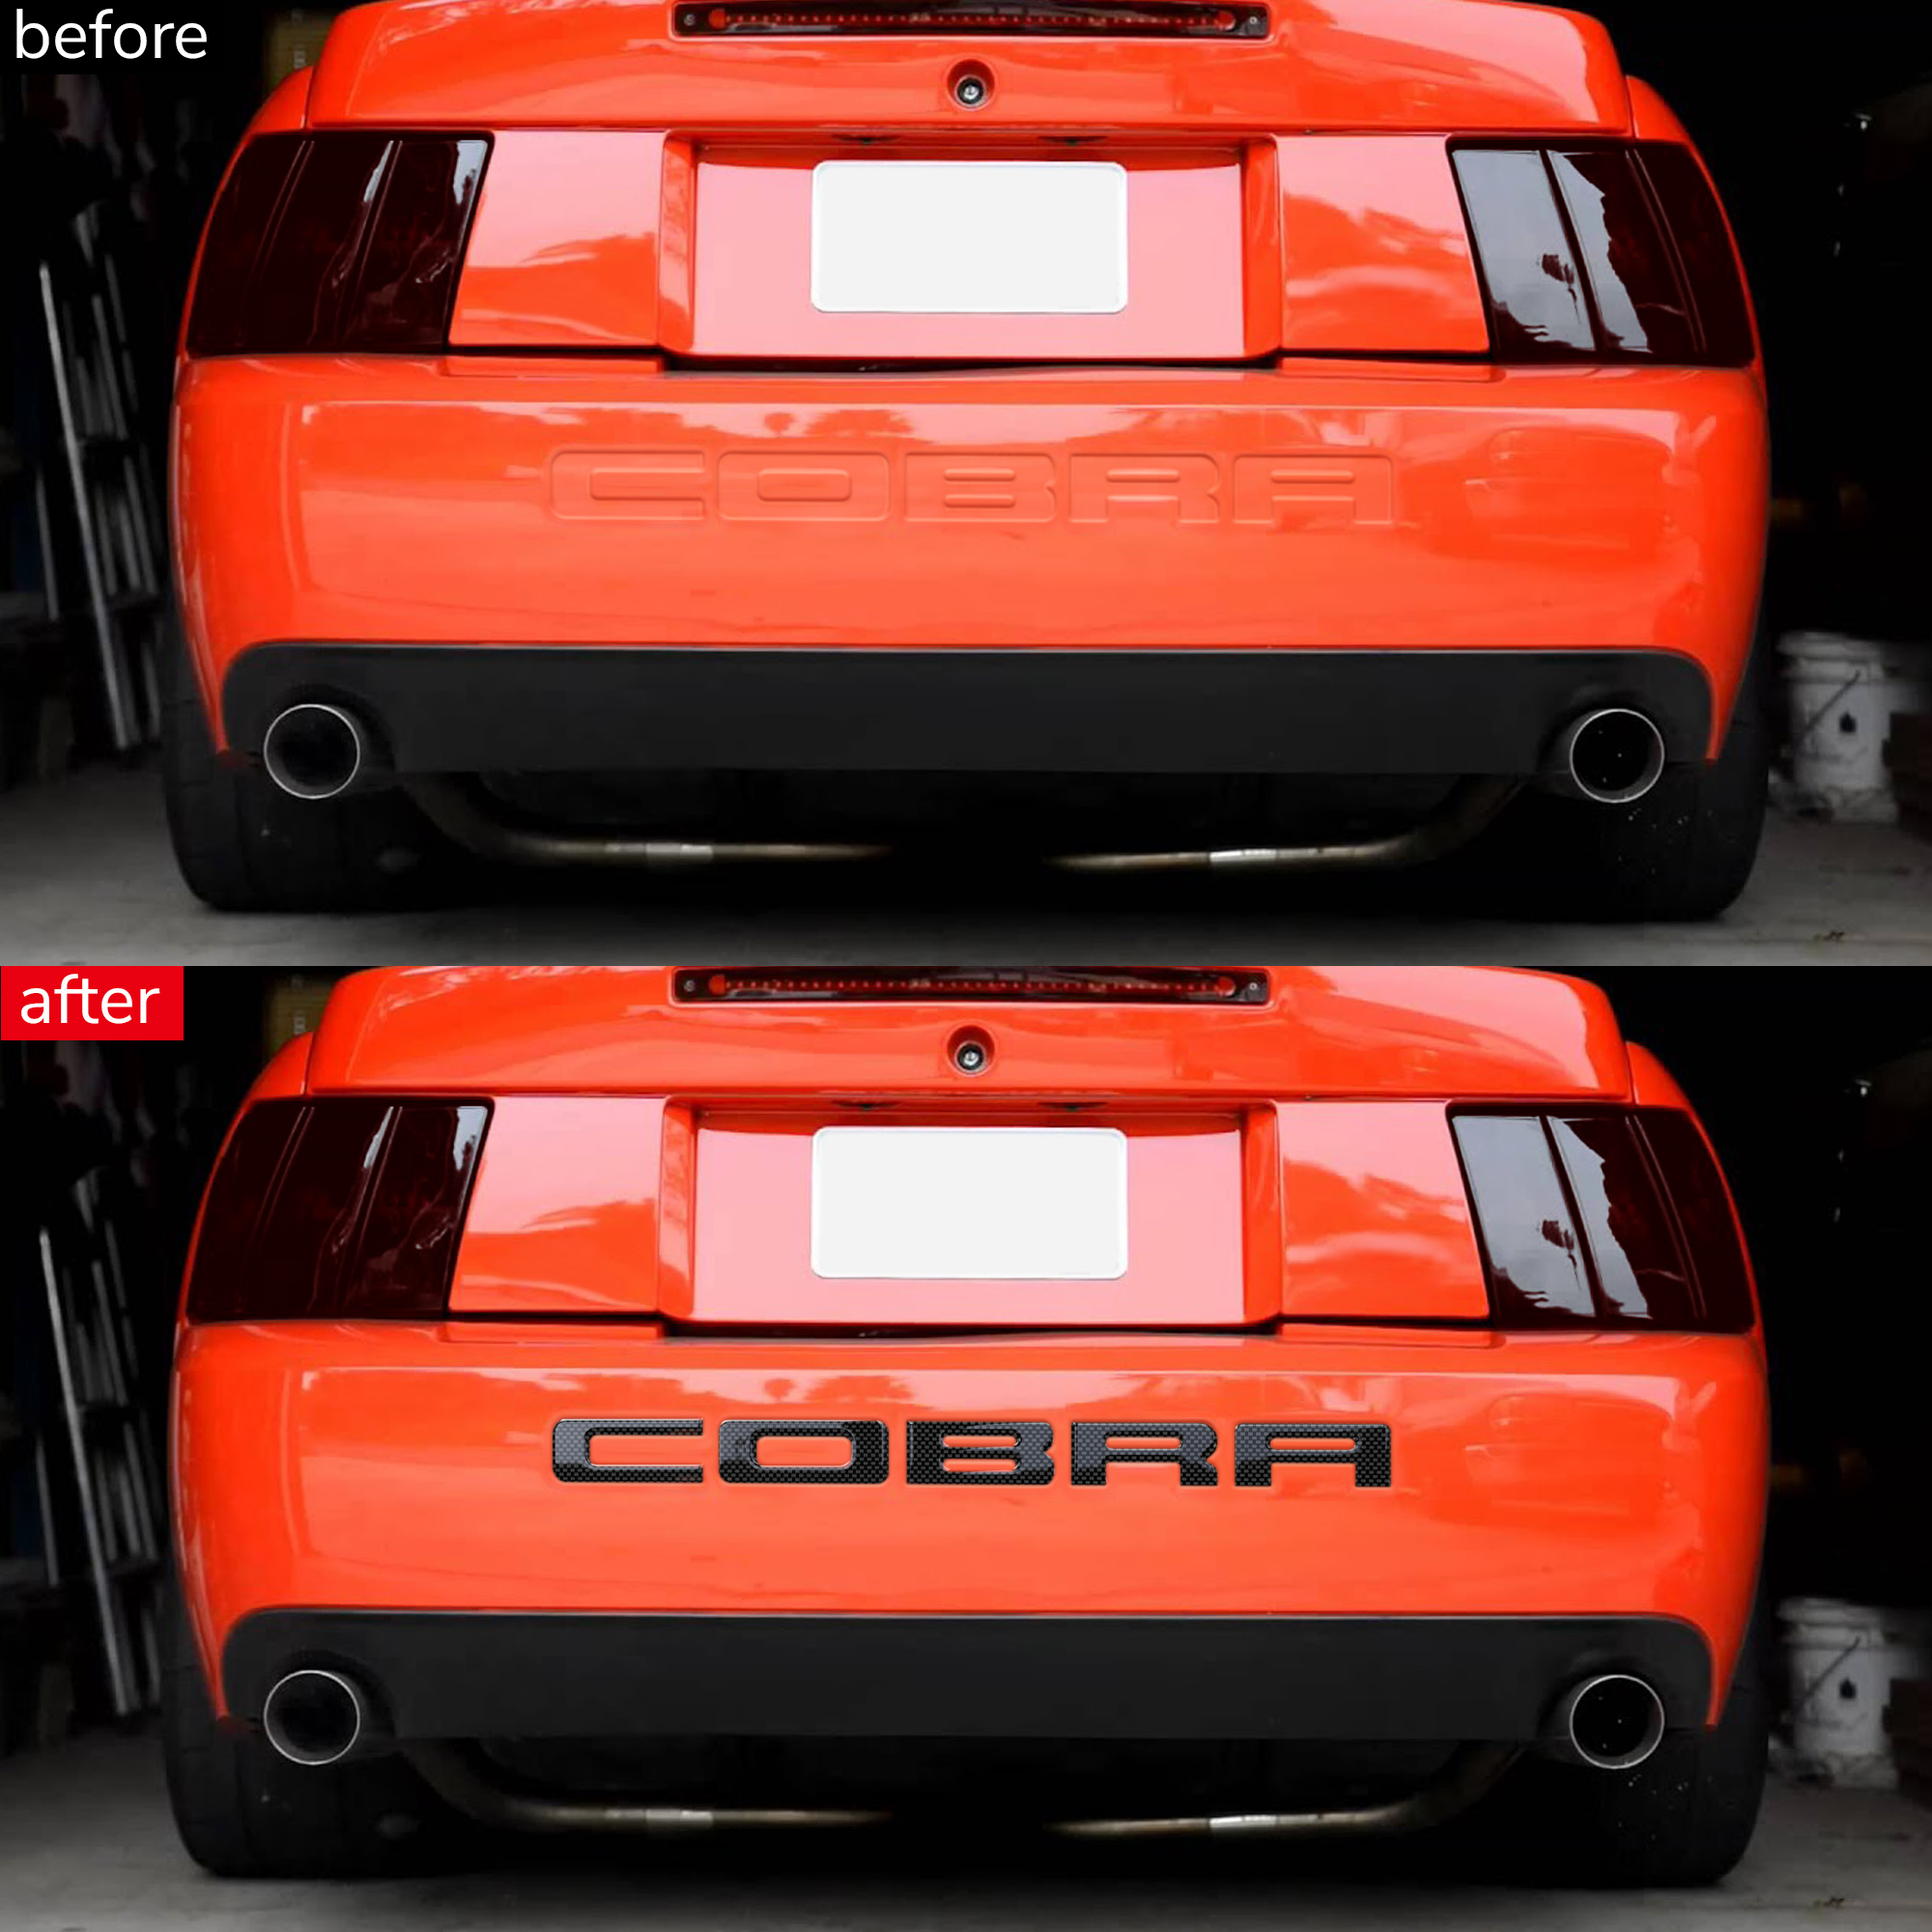 White BDTrims Bumper Plastic Letters Inserts fits 1994-1998 Mustang GT Models